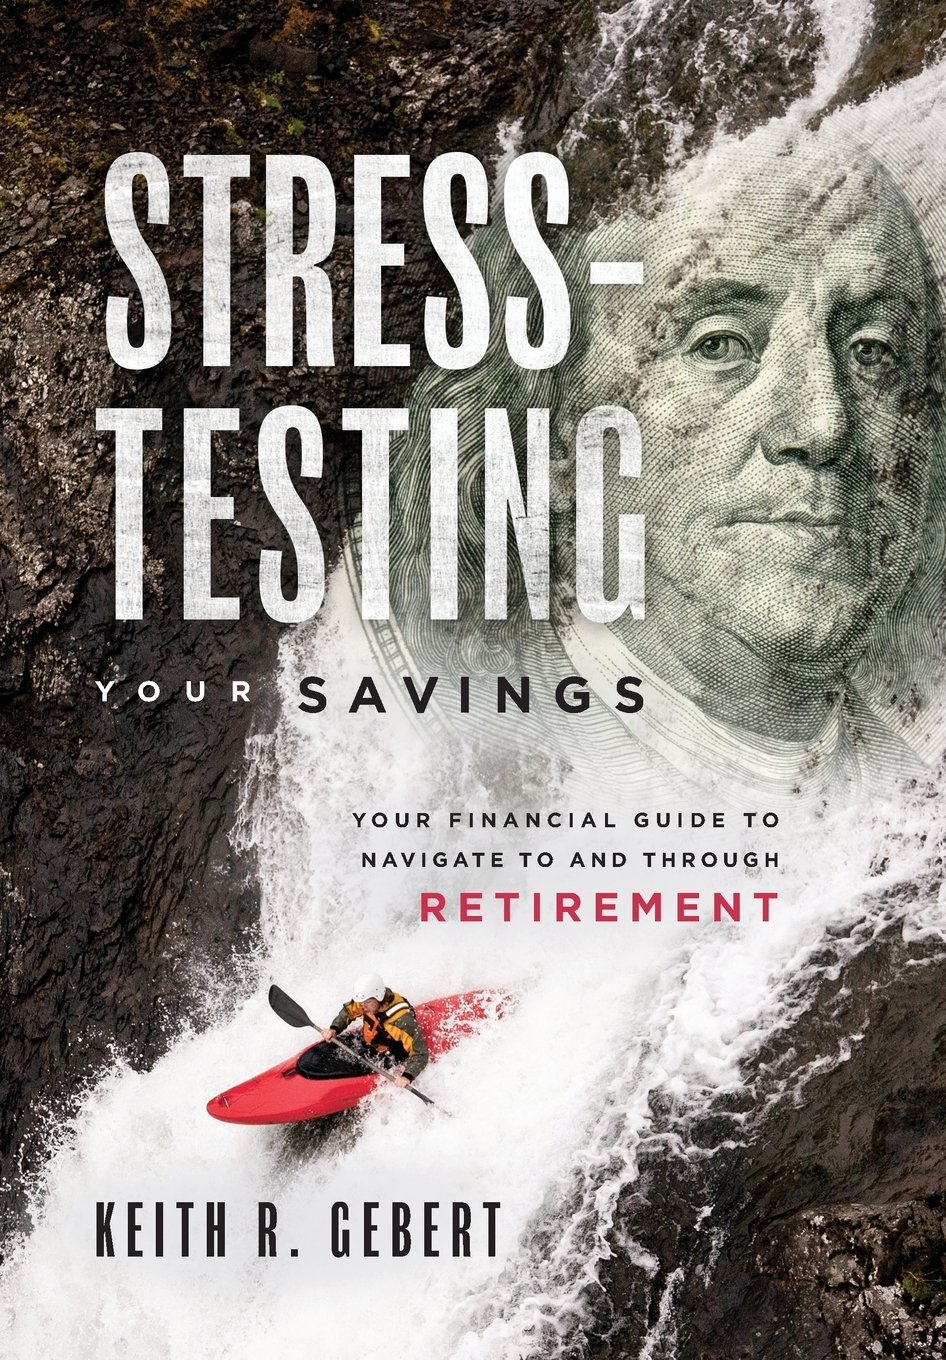 Stress-Testing Your Savings: Your Financial Guide To Navigate To and Through Retirement PDF